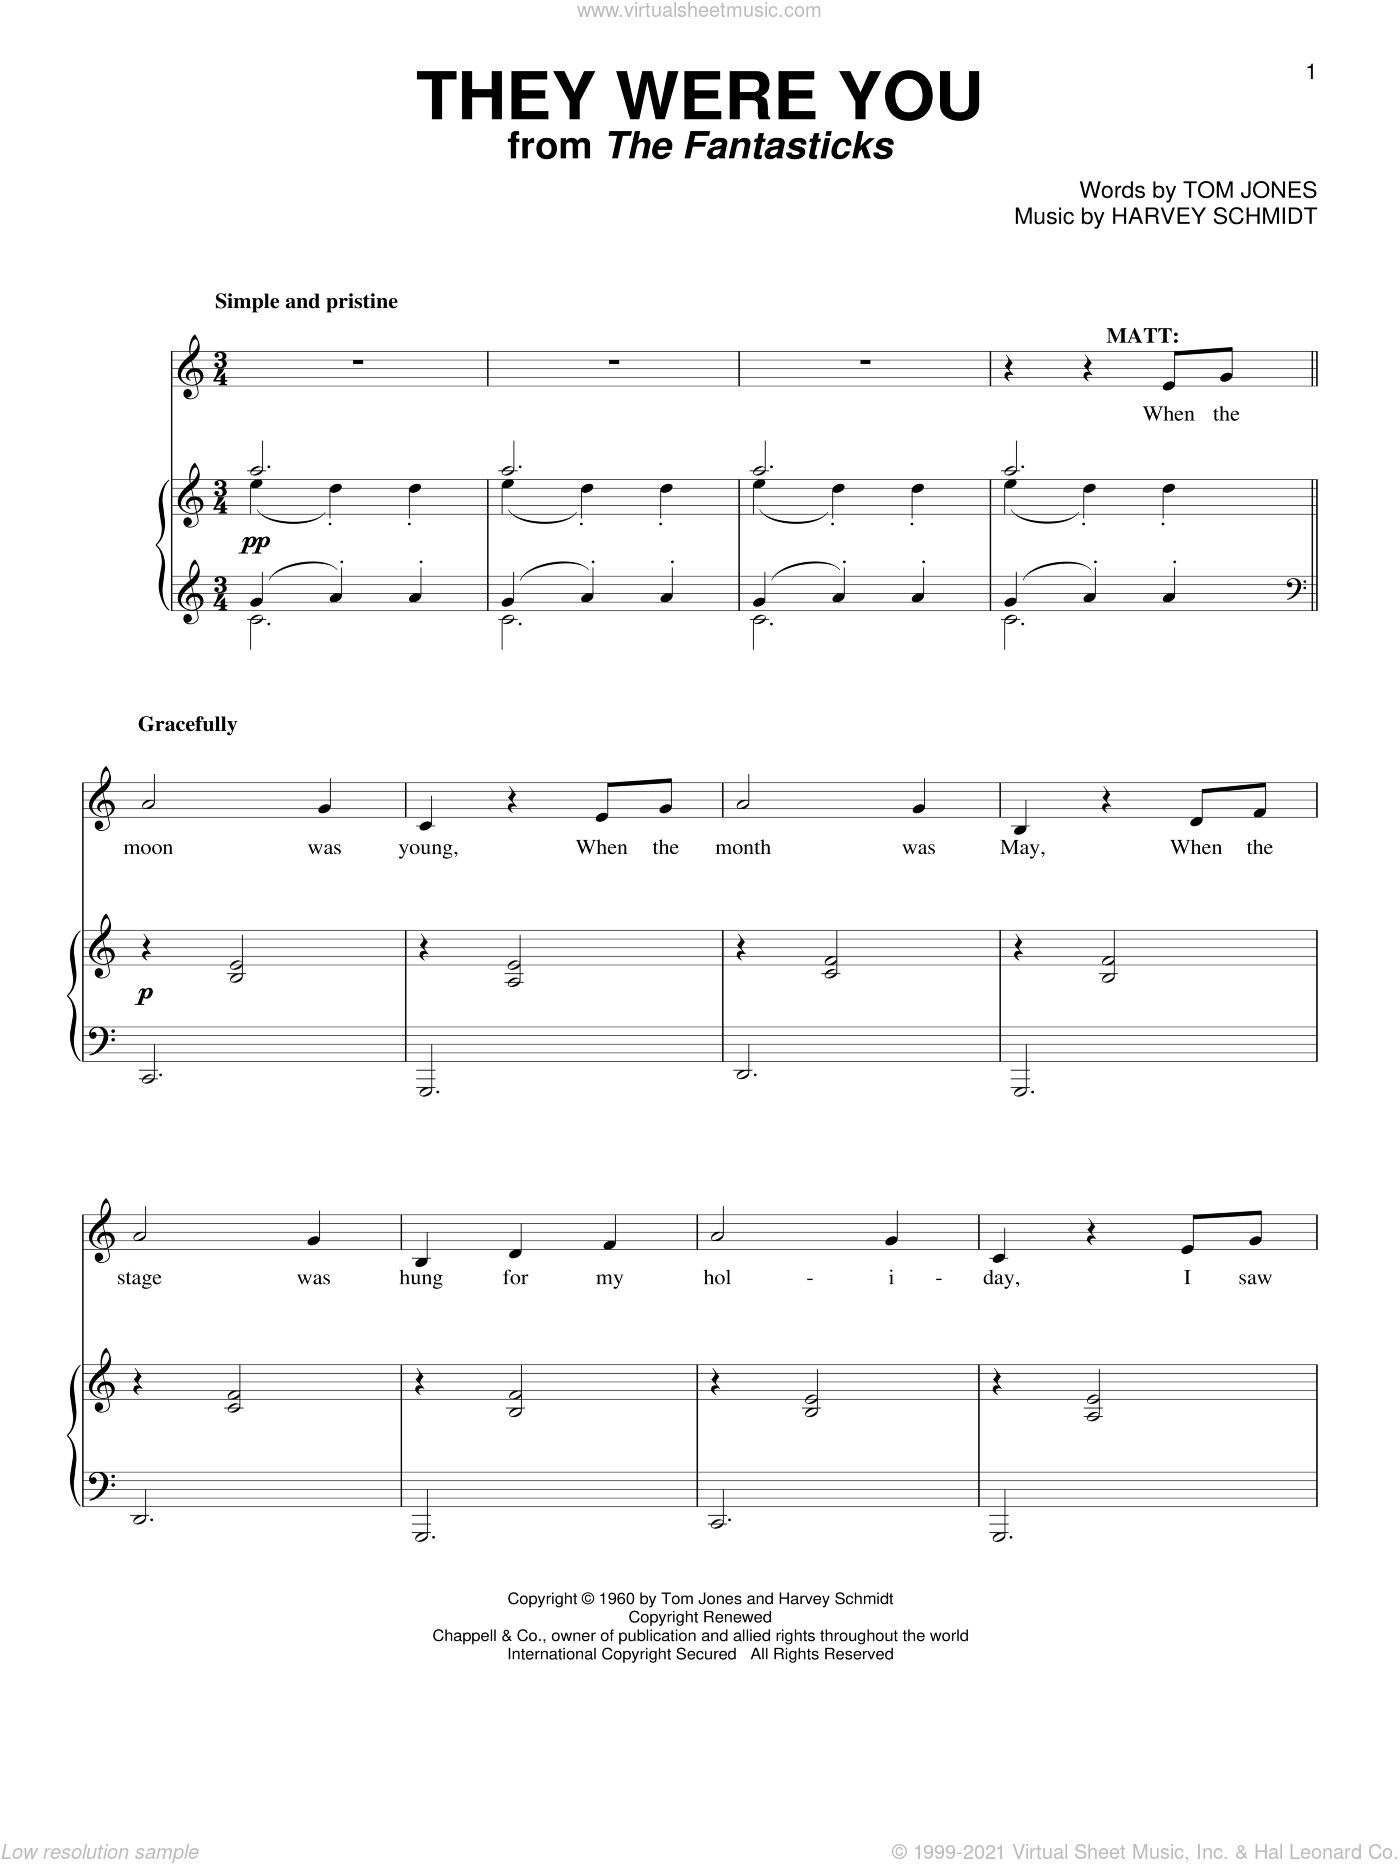 They Were You sheet music for voice and piano by Tom Jones